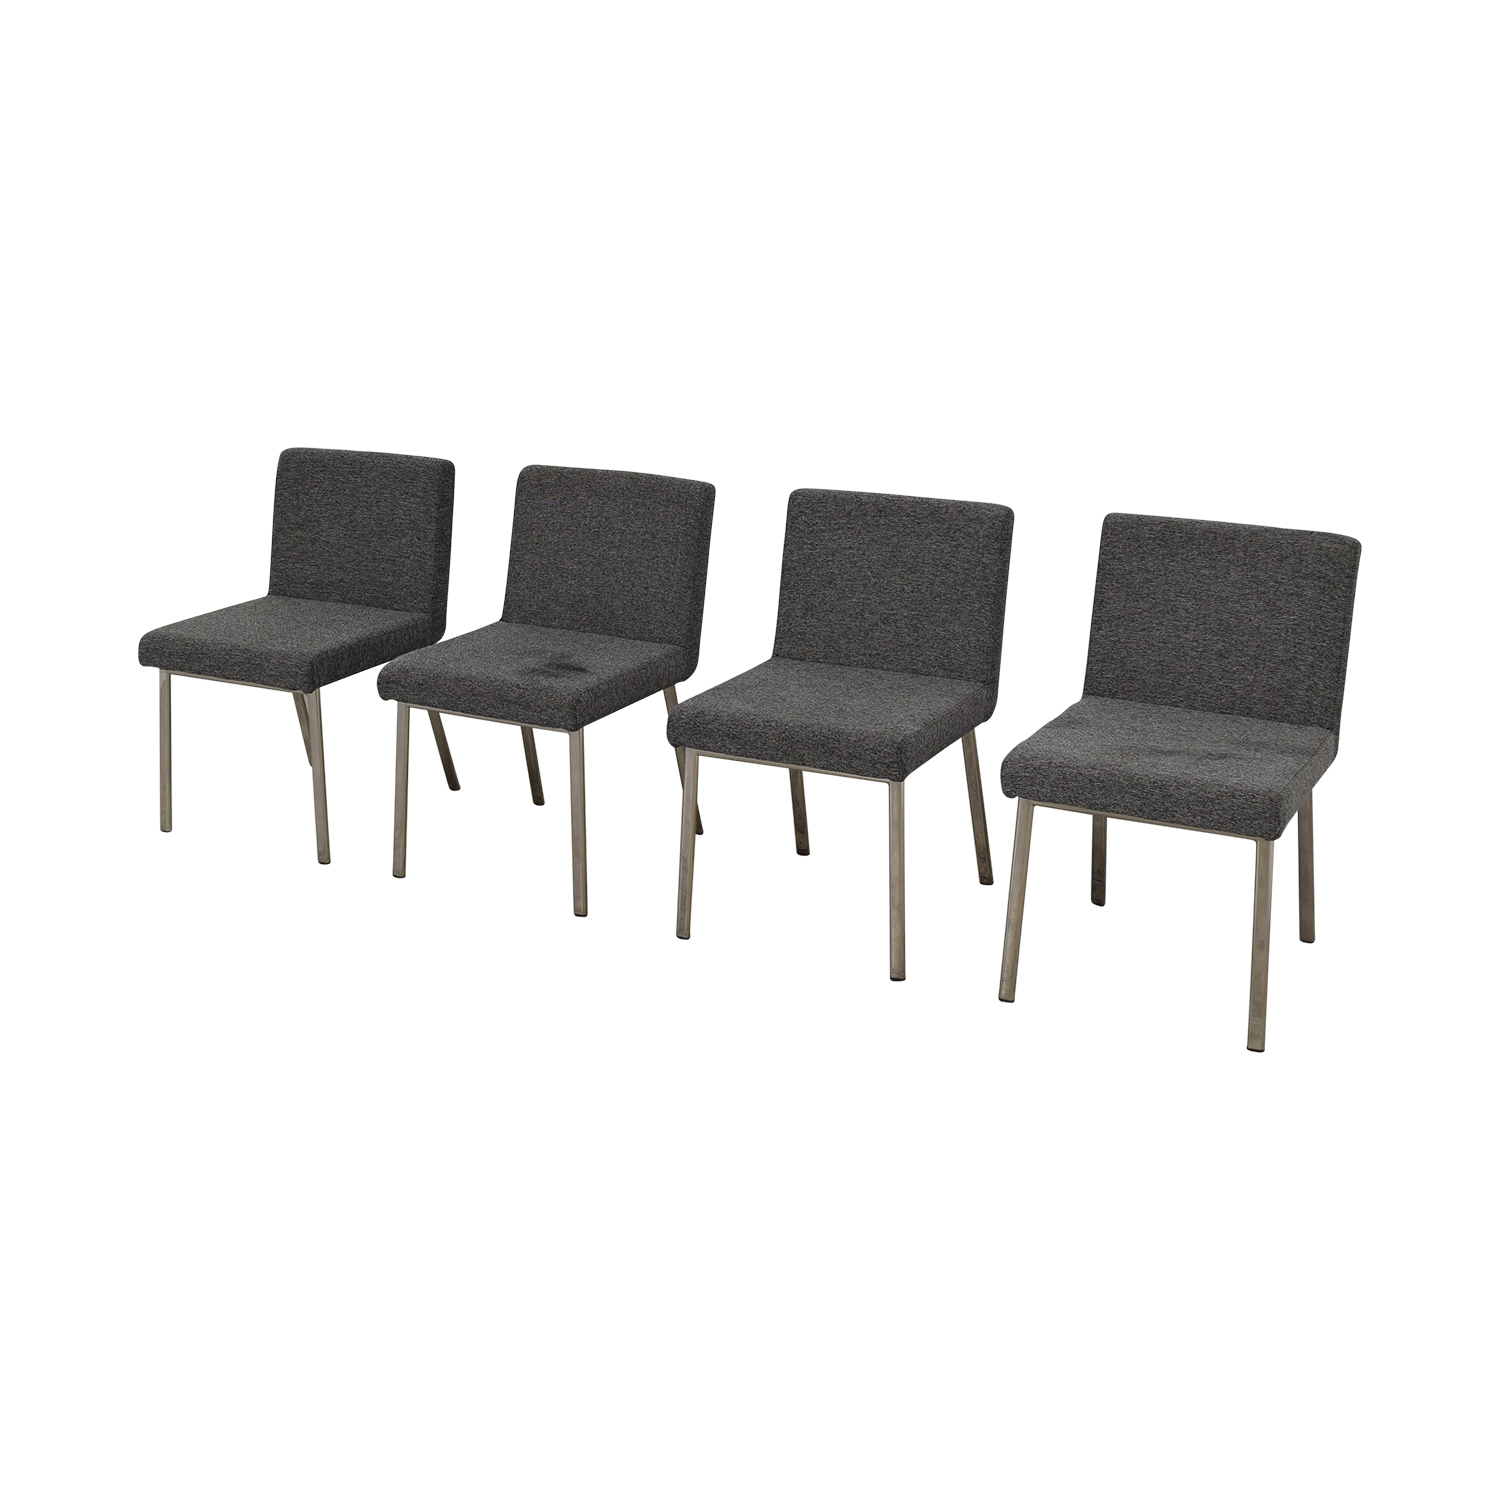 CB2 CB2 Functional Dining Room Chairs price